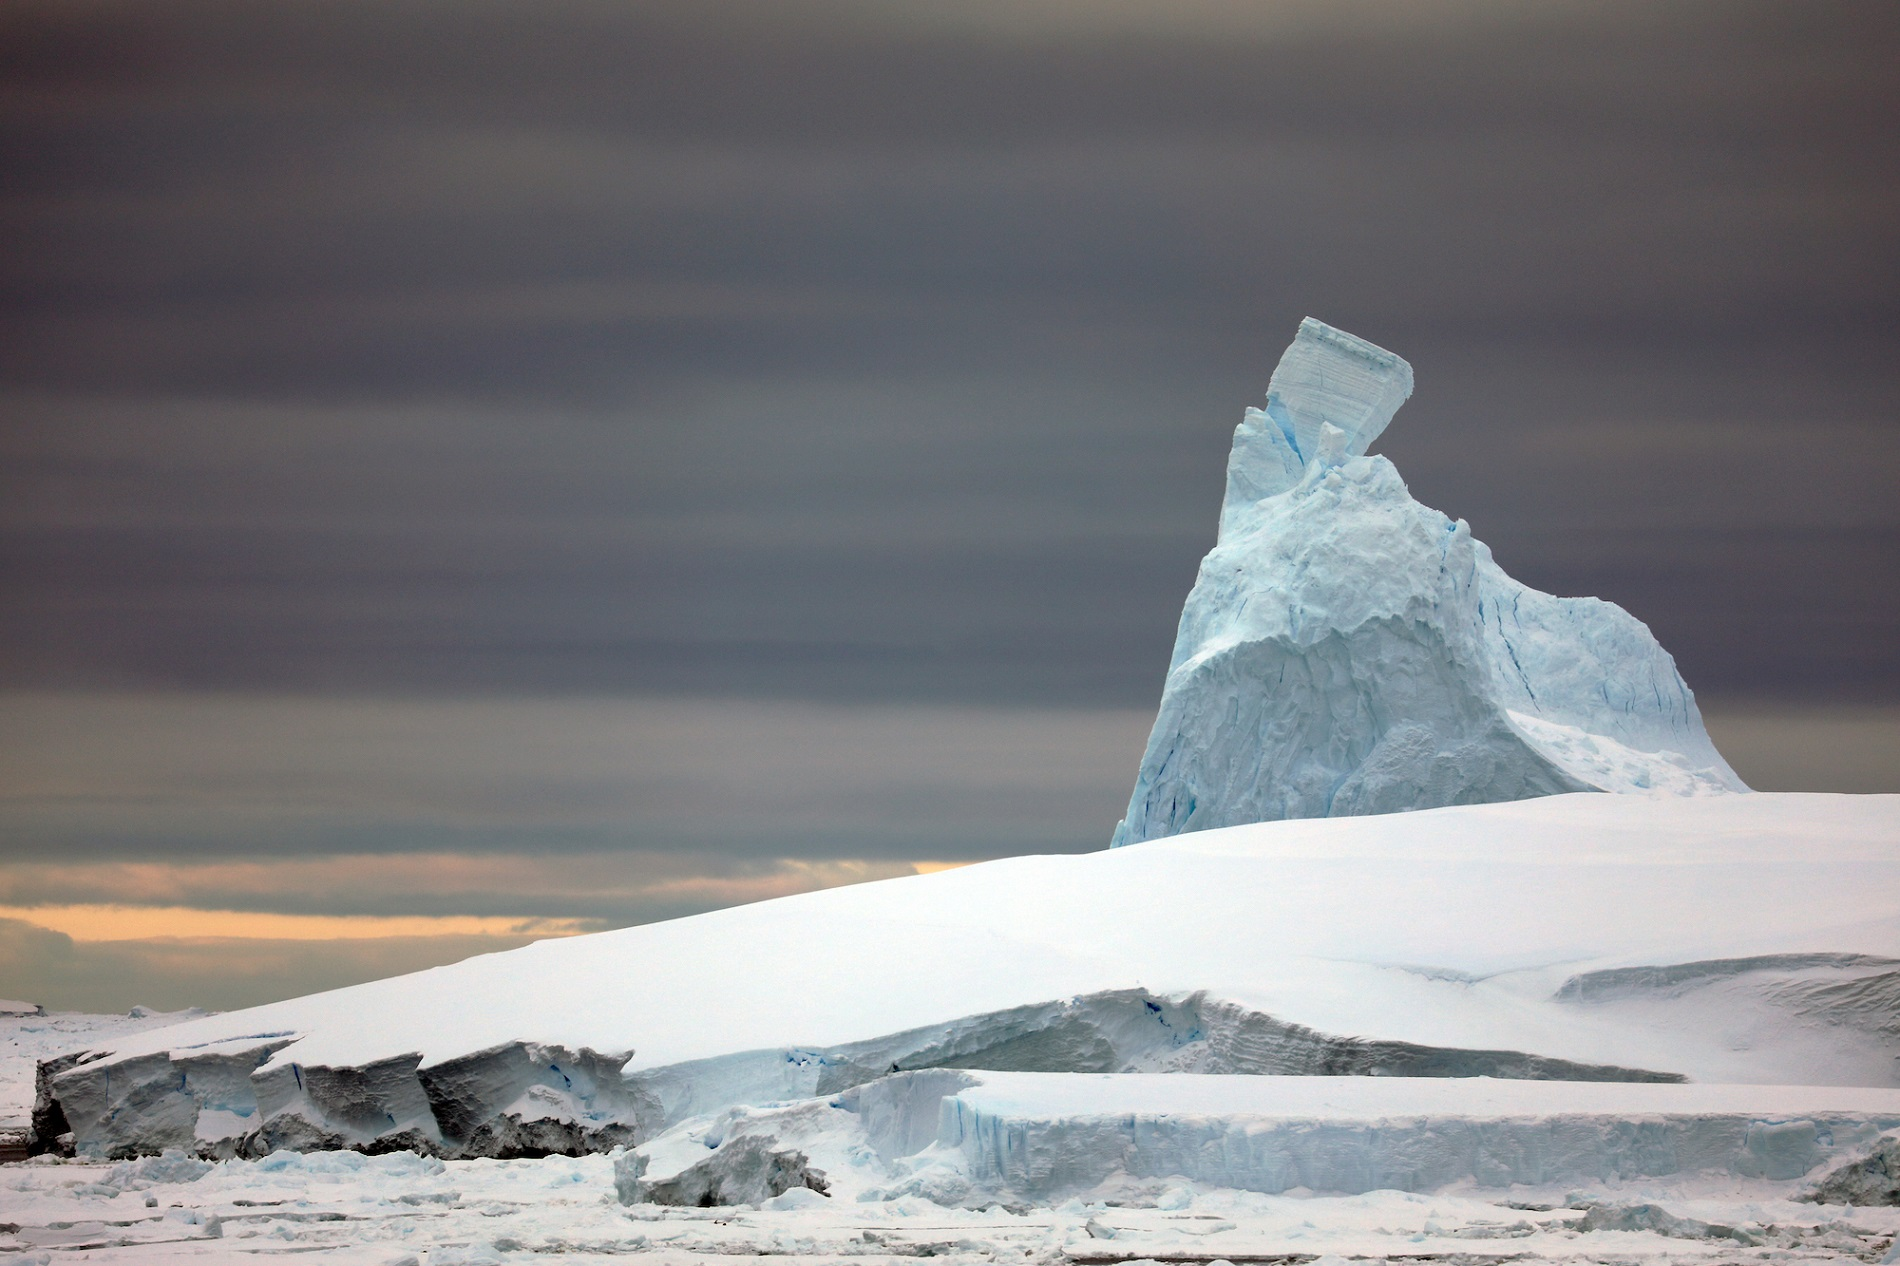 An  iceberg  peaked by a precariously perched pinnacle.